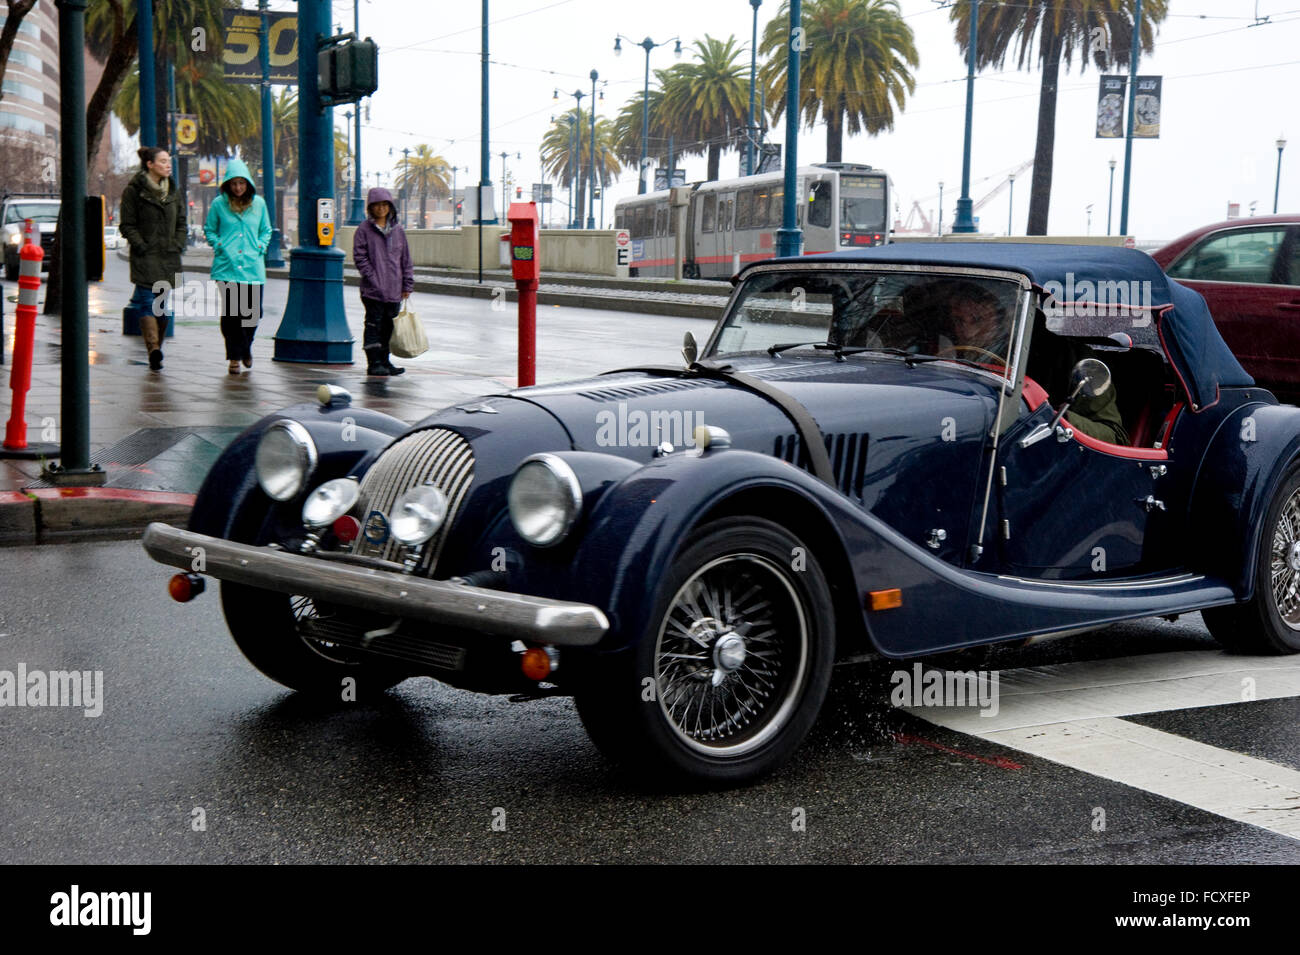 Classic car driving in San Francisco on a rainy day - Stock Image